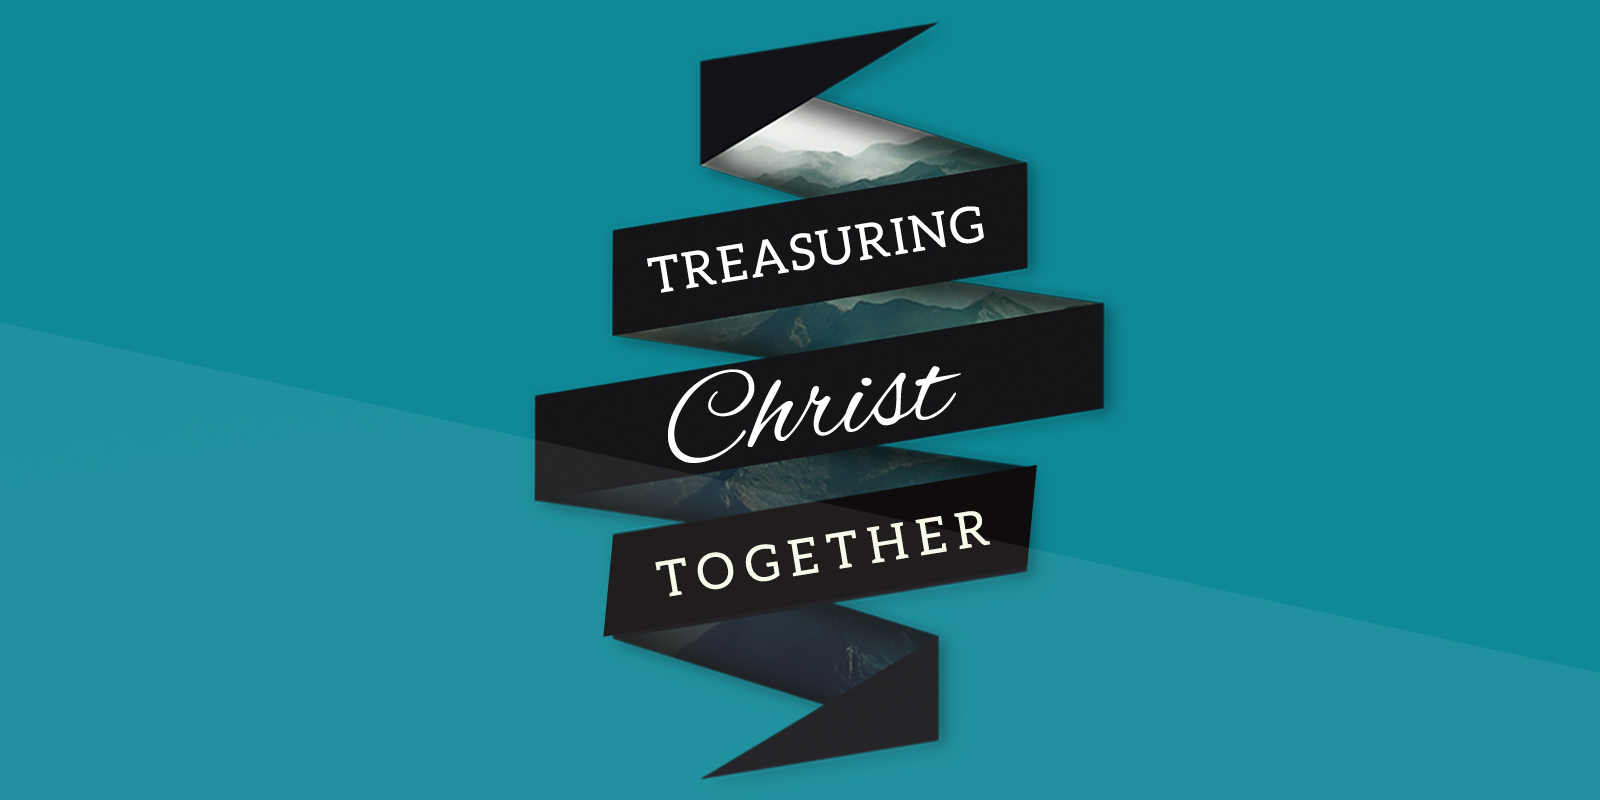 Treasuring Christ Together 2017 Theme for Church